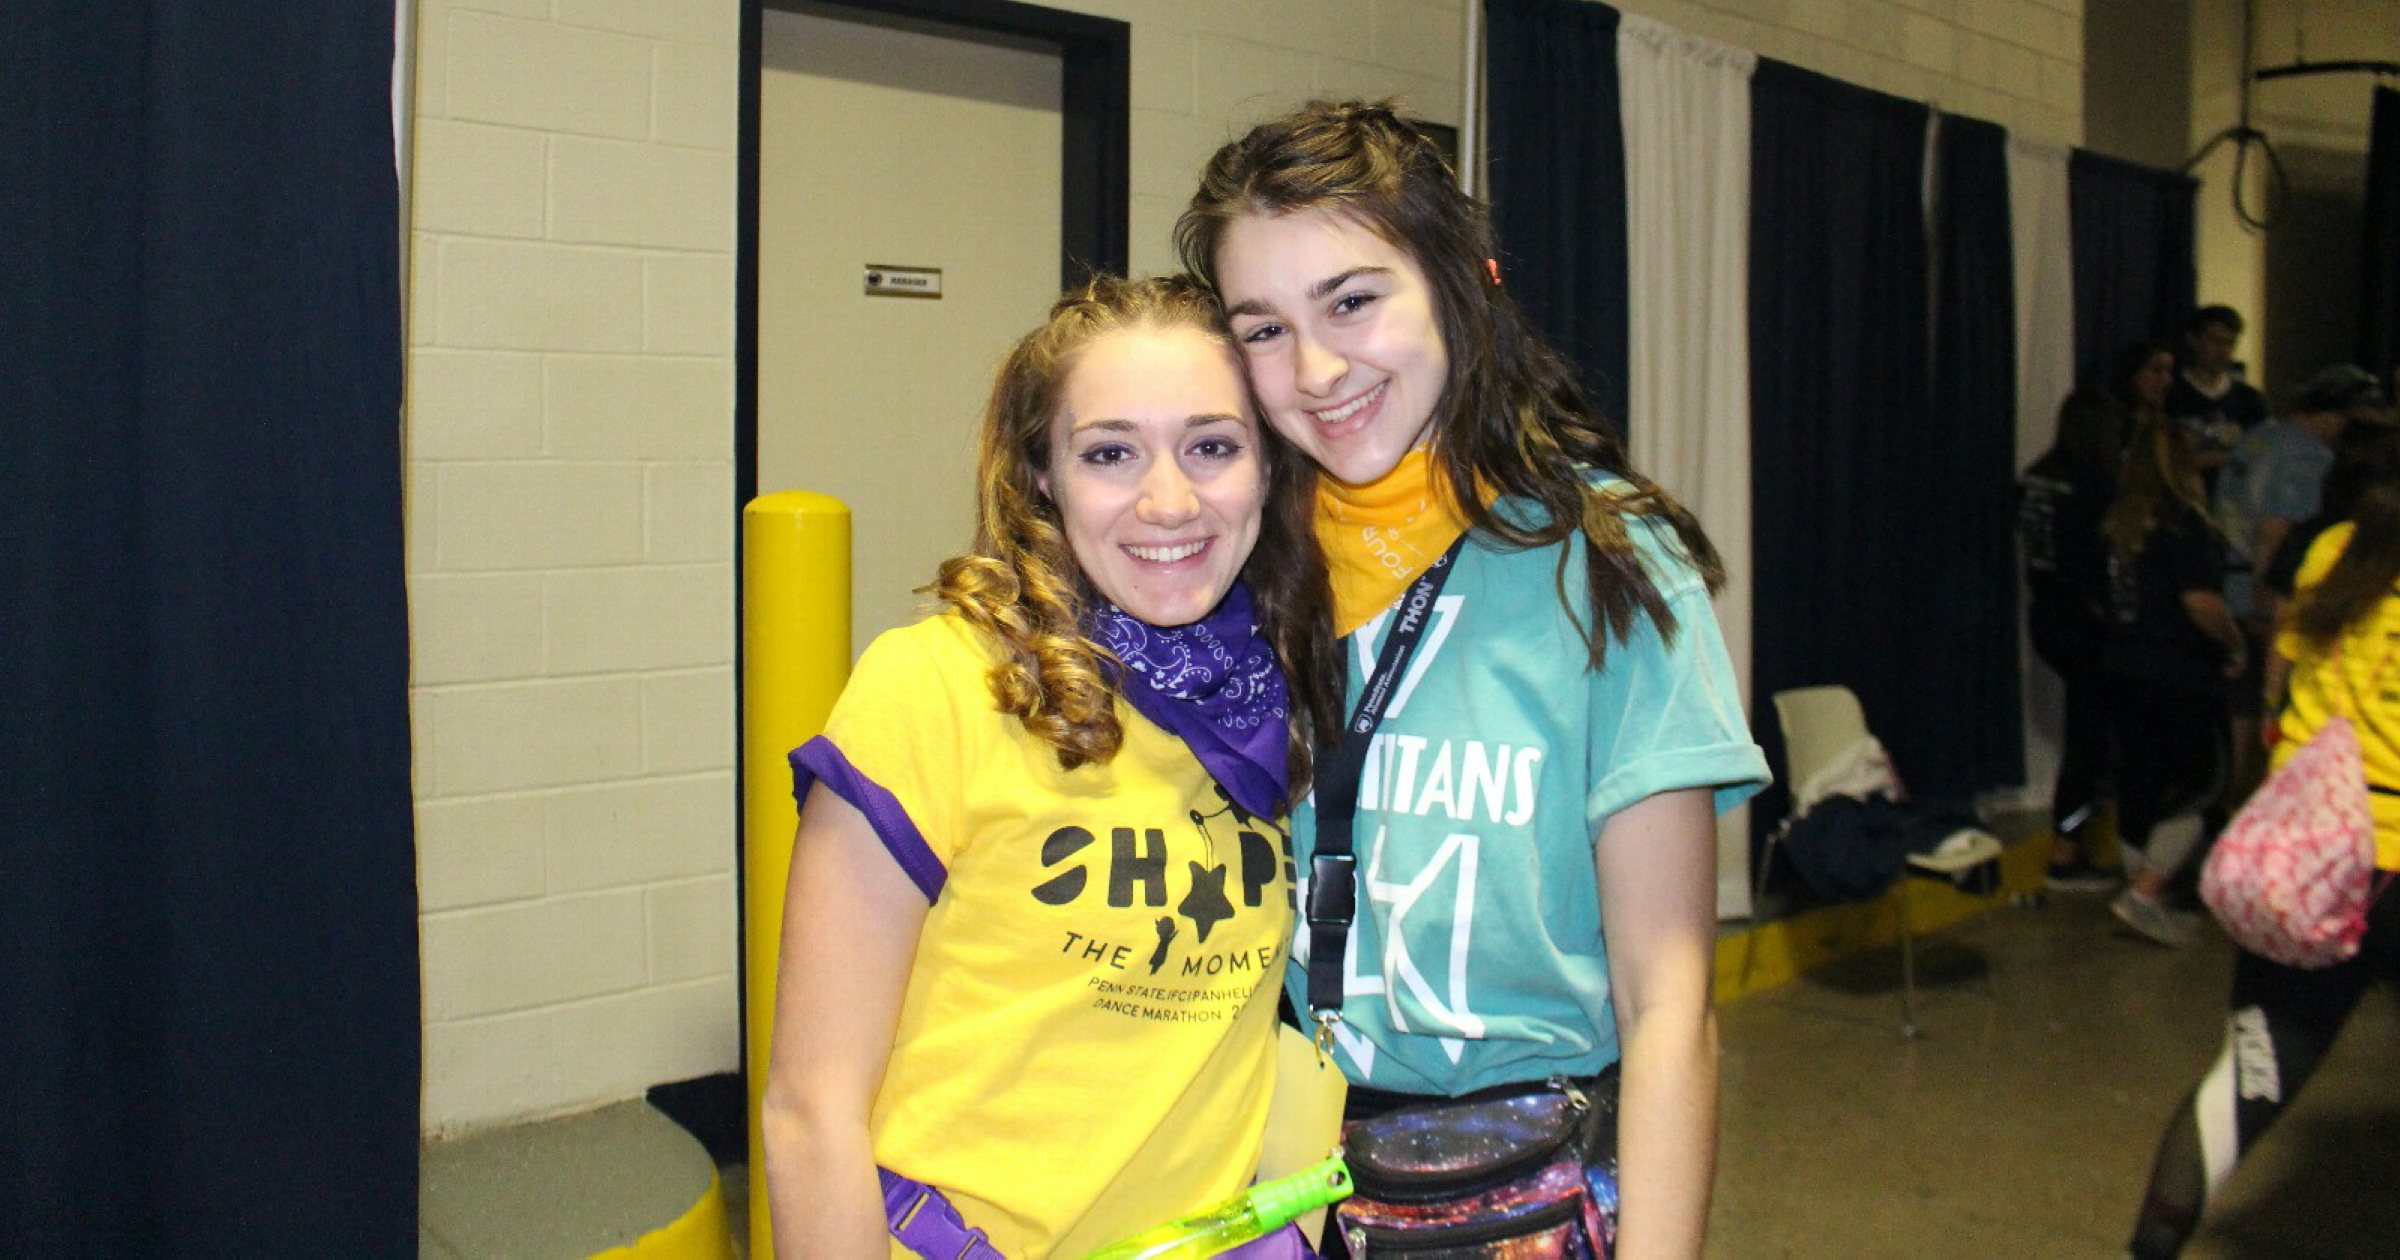 Cedar Crest grad brings homegrown fundraising passion to Penn State THON